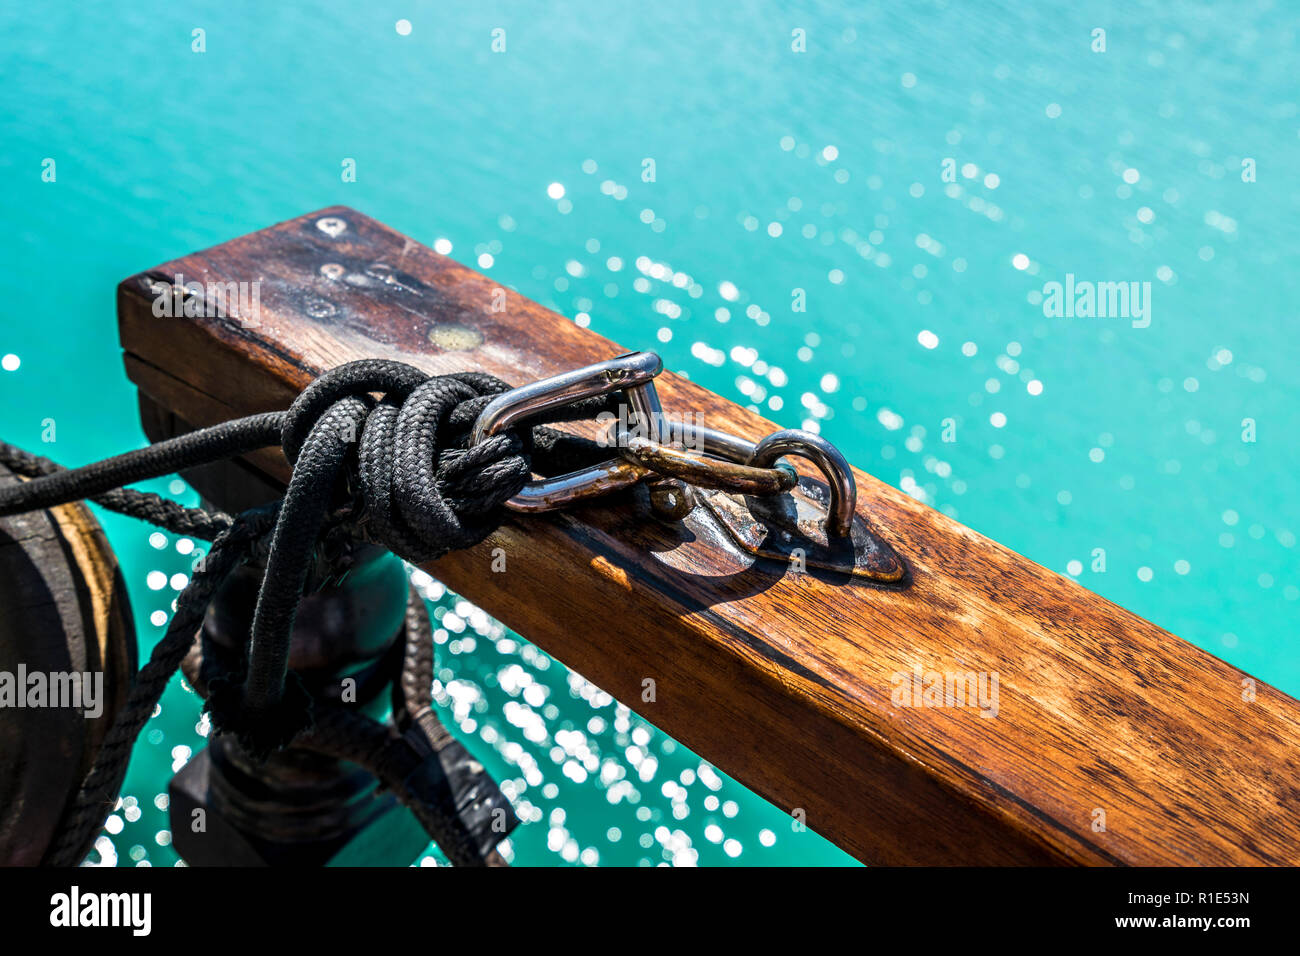 Wooden Row on Carbine with Blue Ocean - Stock Image